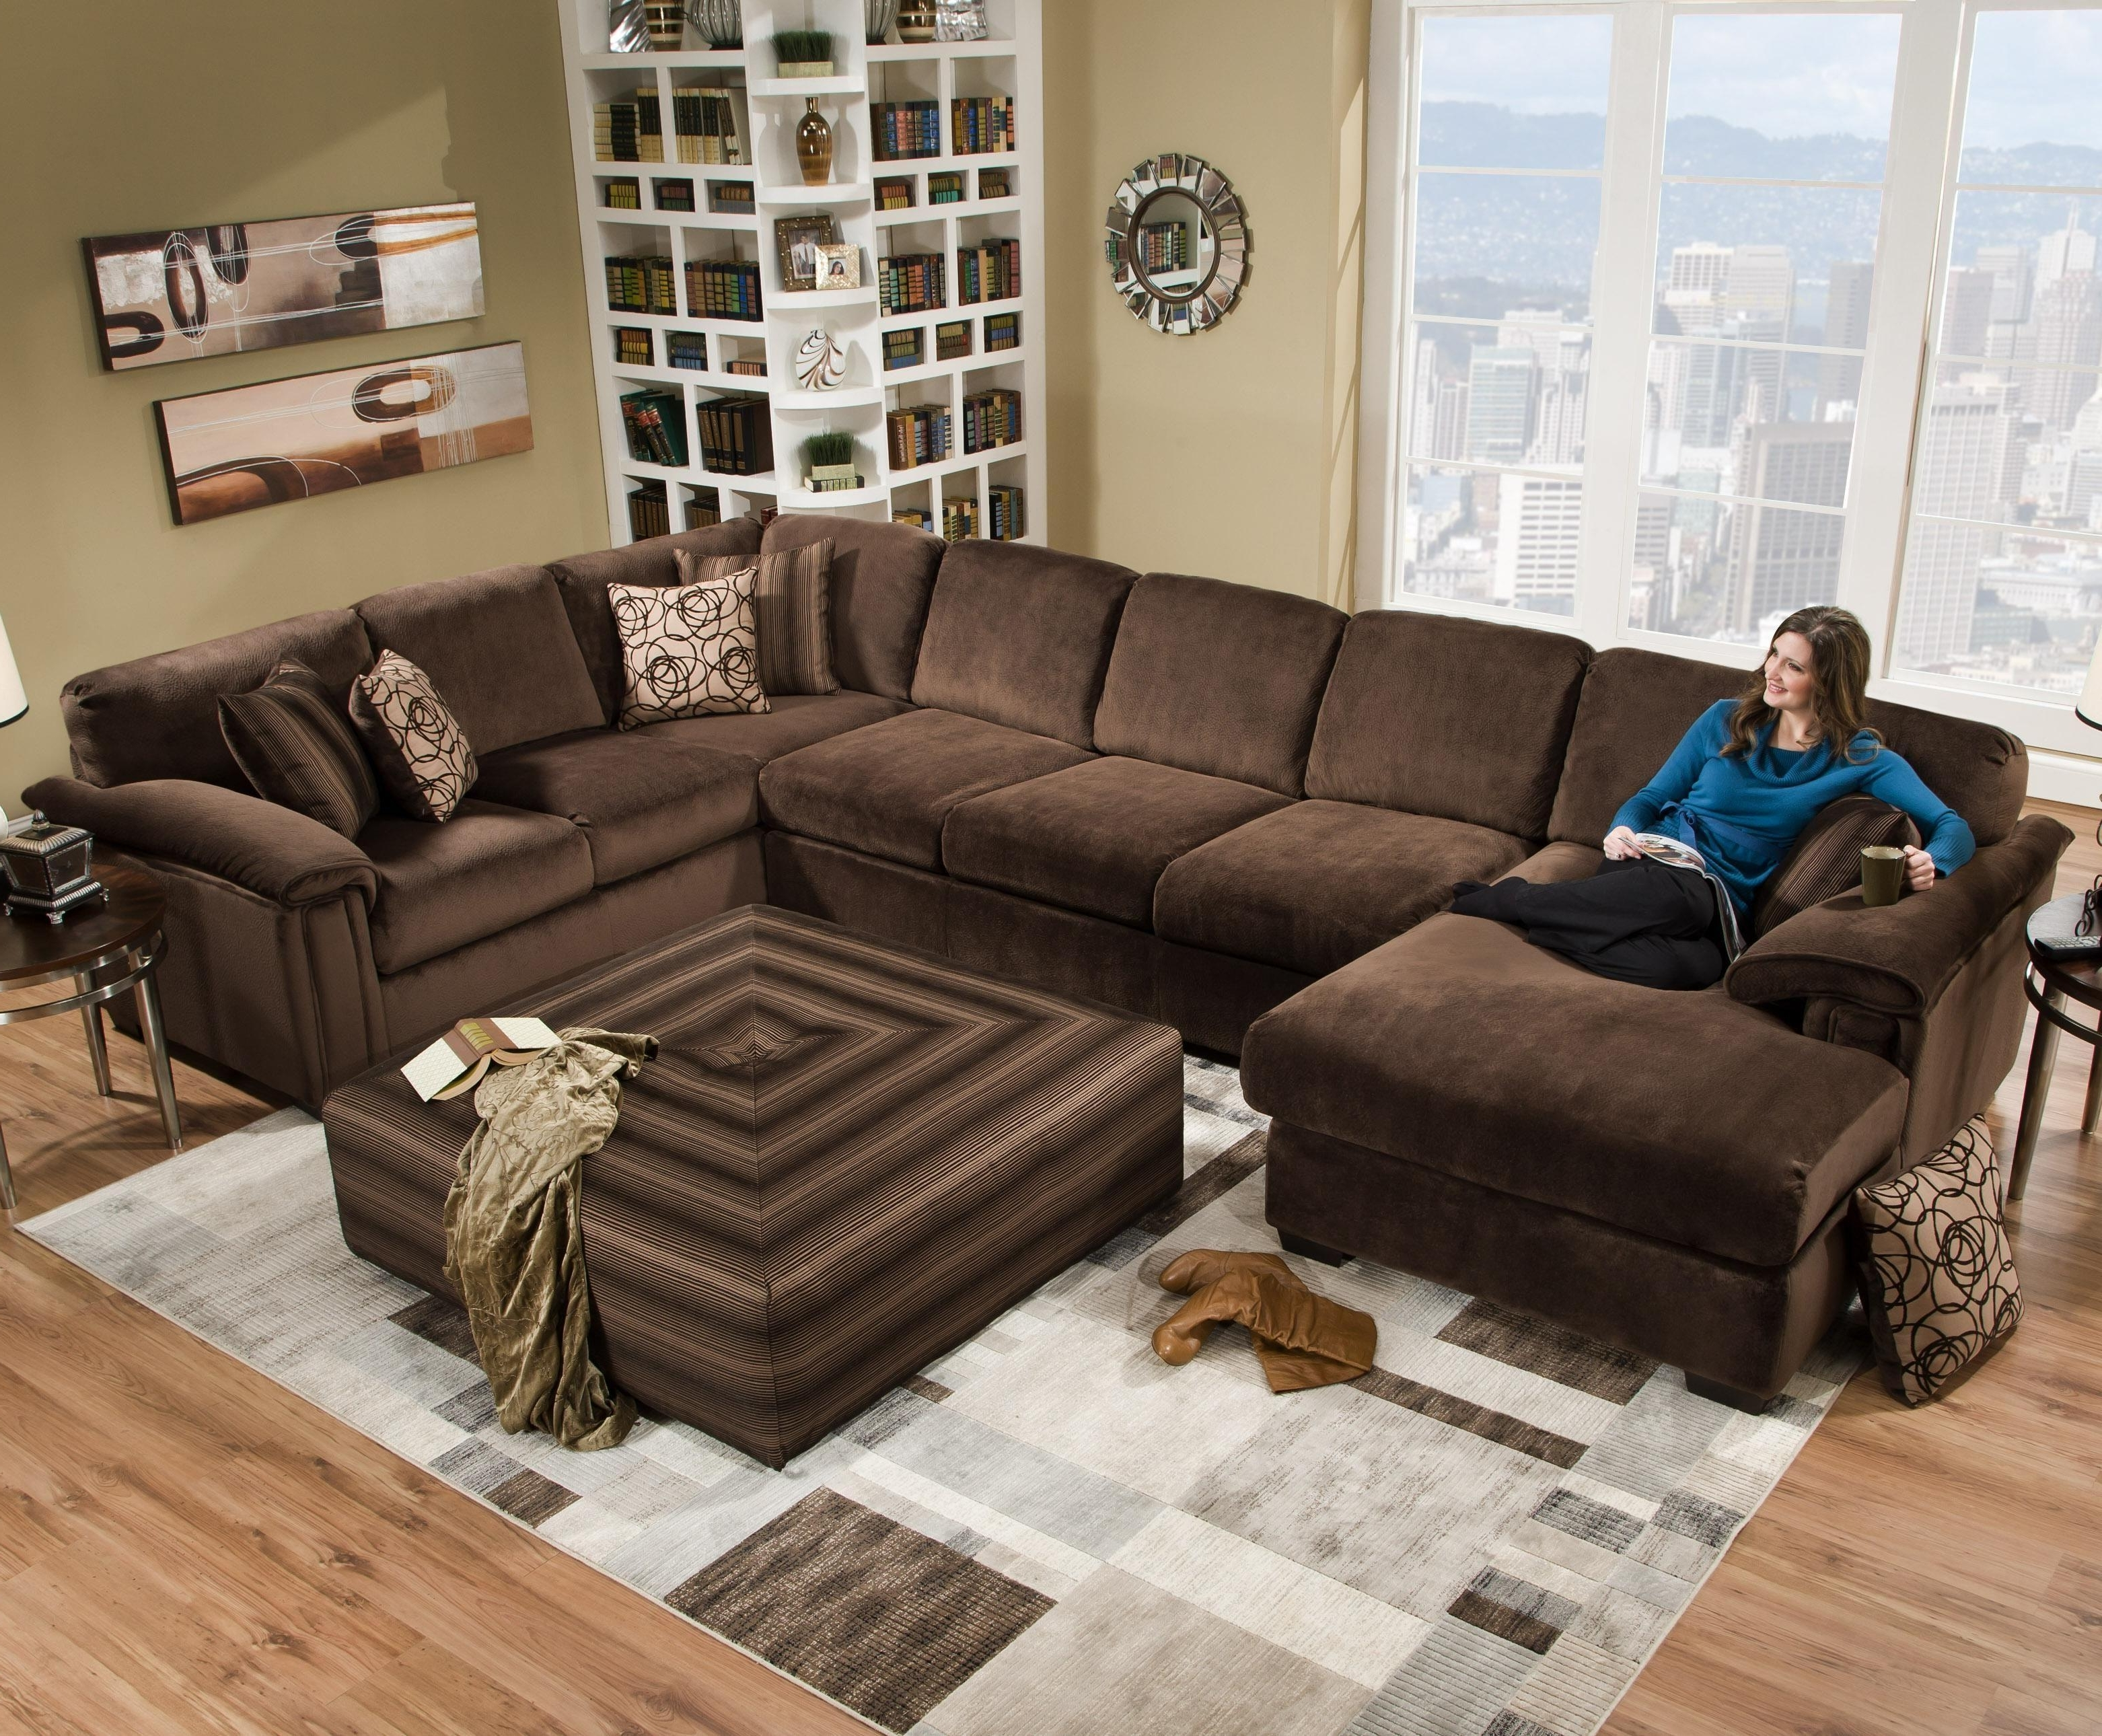 Furniture : Nebraska Furniture Mart Couches Lovely Six Person With Regard To Most Popular Nebraska Furniture Mart Sectional Sofas (View 9 of 20)